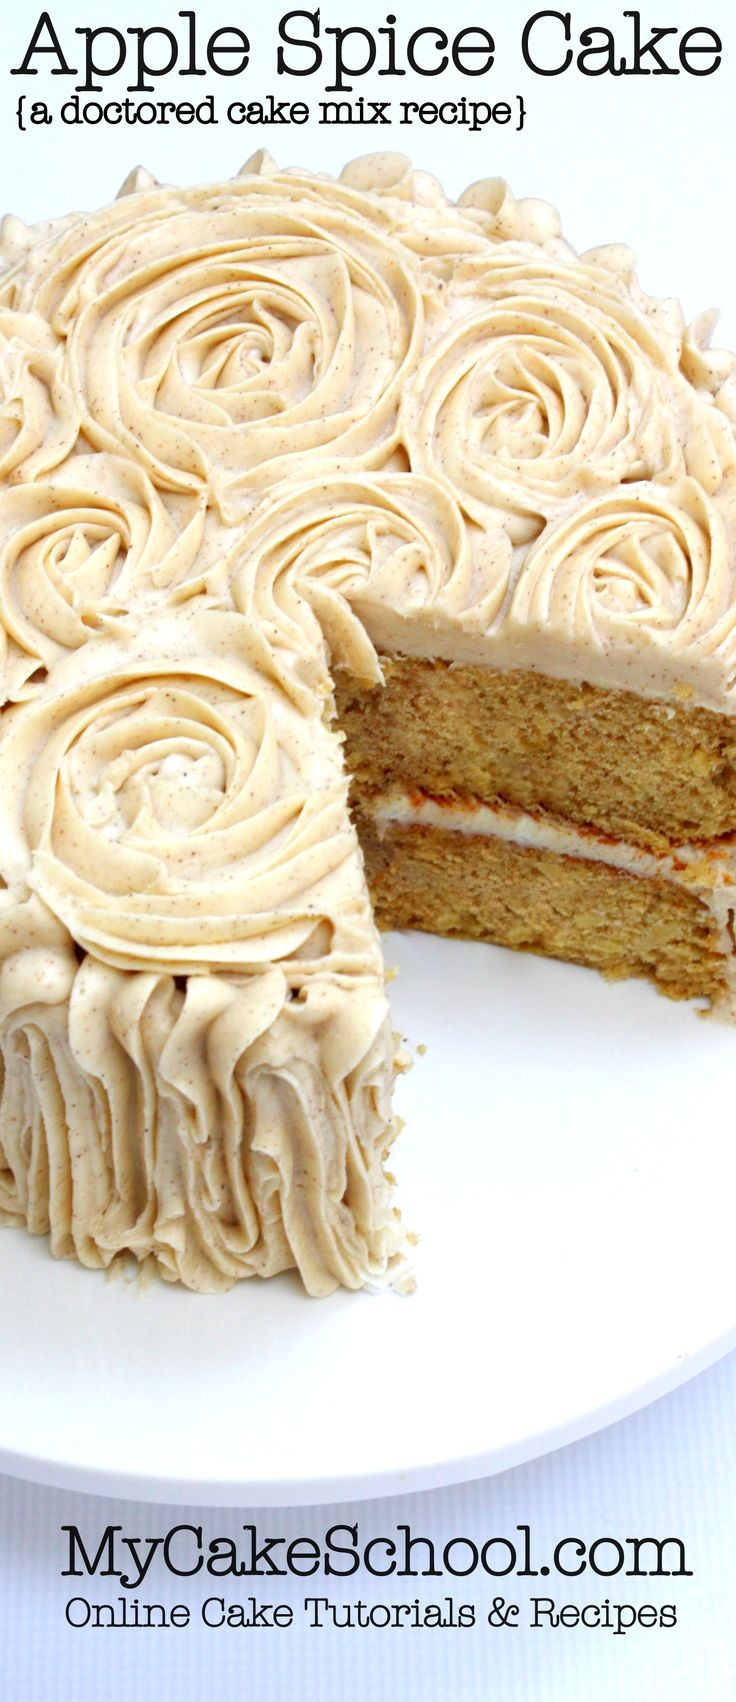 Amazing Apple Spice Cake! This recipe starts with a cake mix. So simple and delicious! MyCakeSchool.com Cake Recipes and Tutorials!